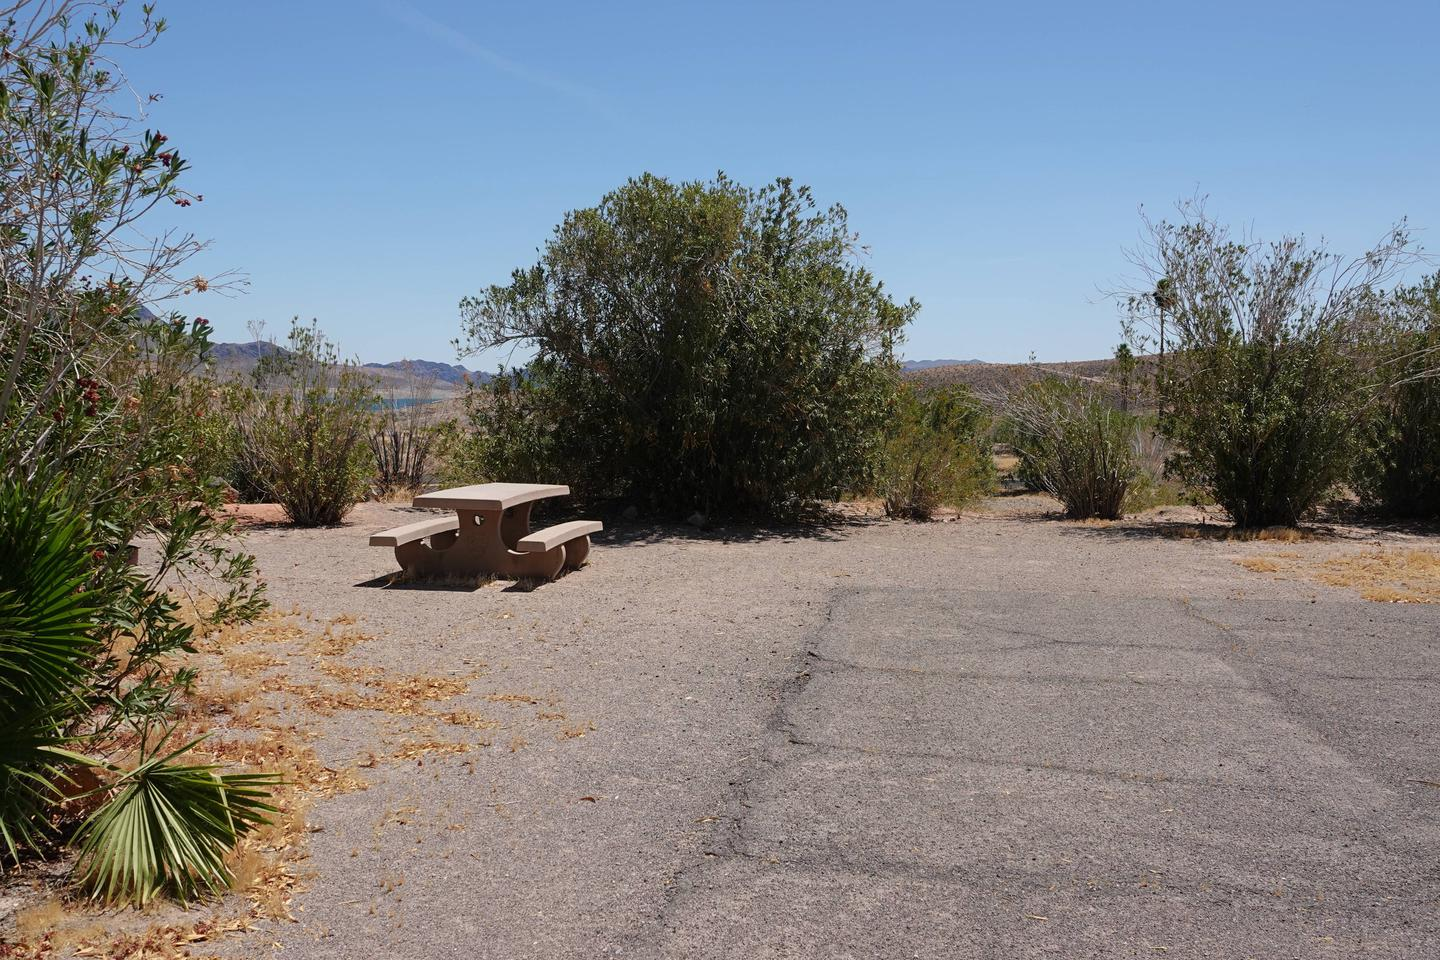 Campsite located in a desert setting2Callville Bay Campground Site 30